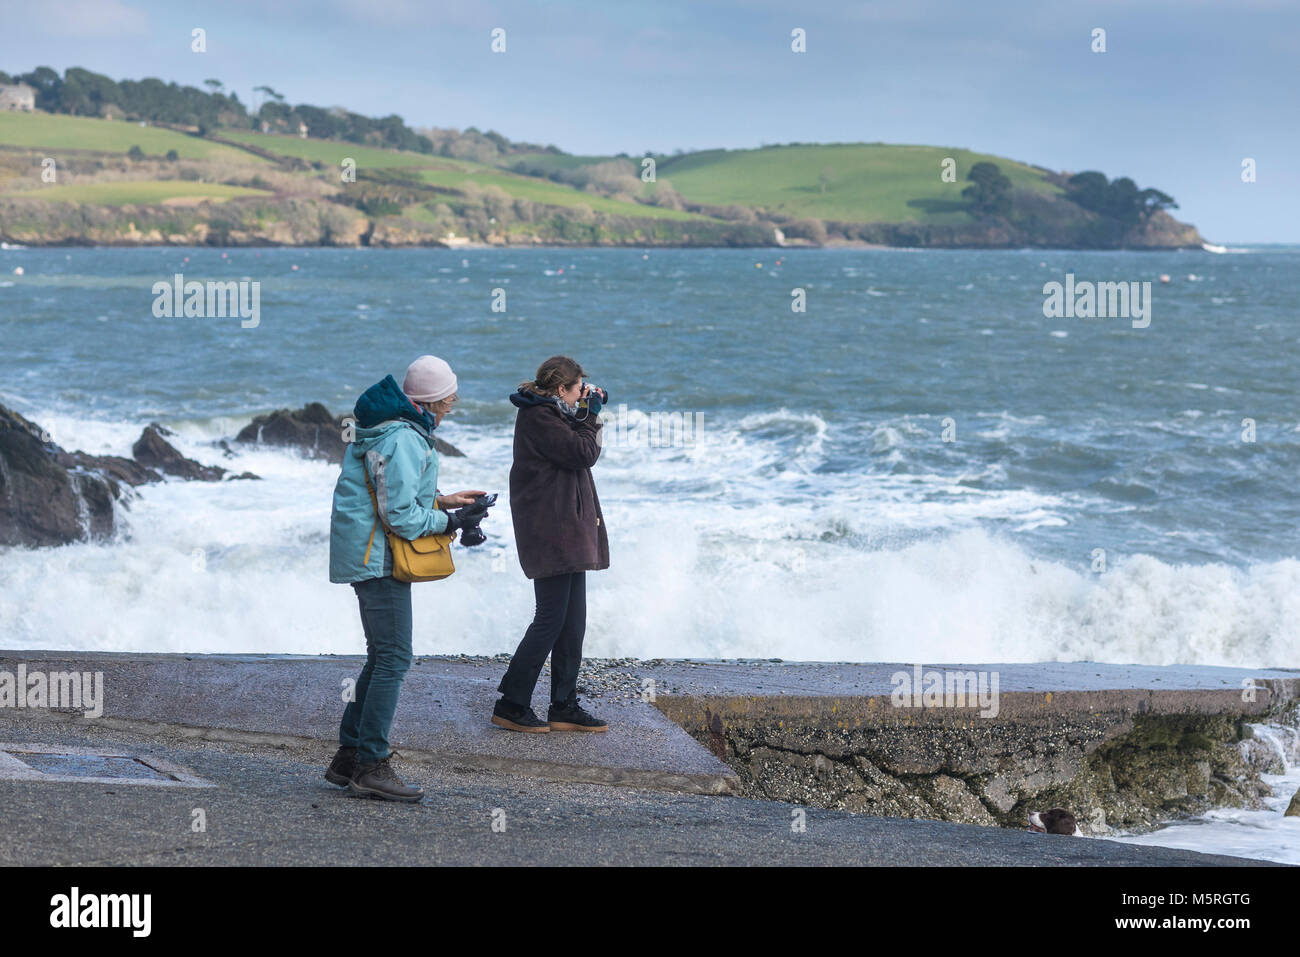 Tourists taking photographs on the beach at Trebah Garden Gardens in Cornwall. - Stock Image